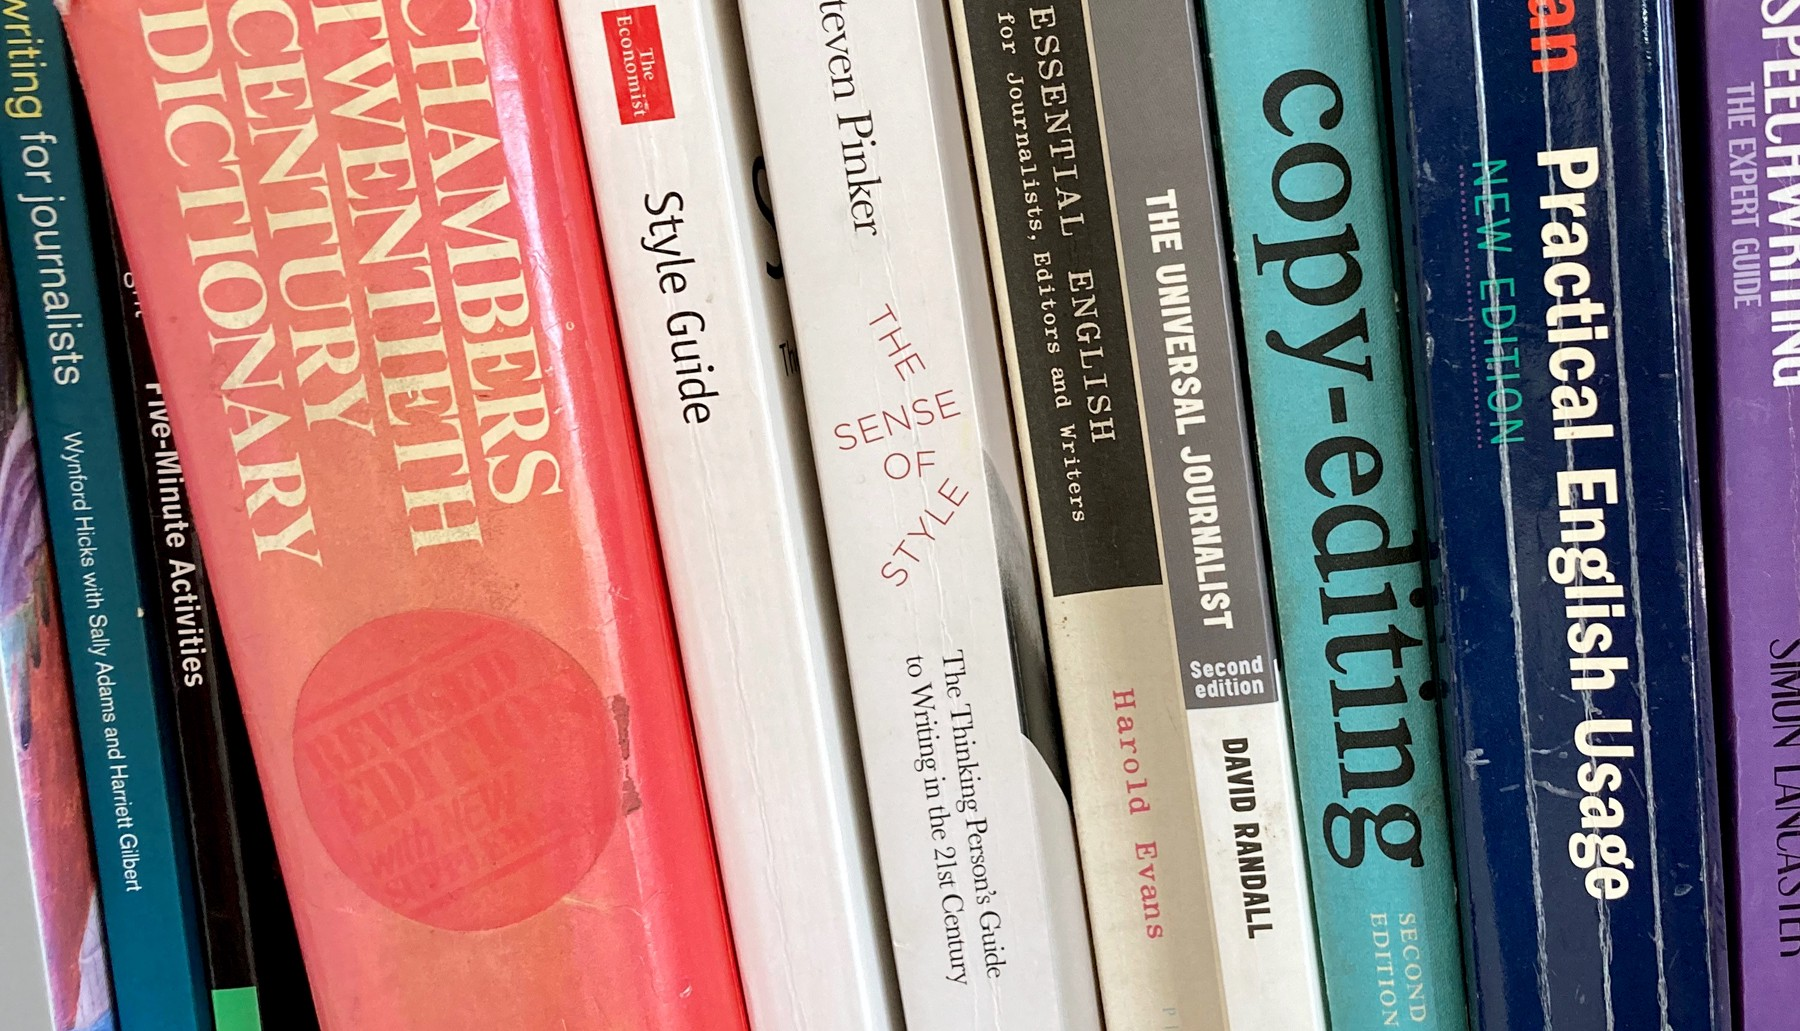 A bookshelf showing some of the writer's source books, including The Economist Style Guide, Steven Pinker's 'The Sense of Style', 'The Universal Journalist' by David Randall and titles on copy-editing and Practical English Usage.